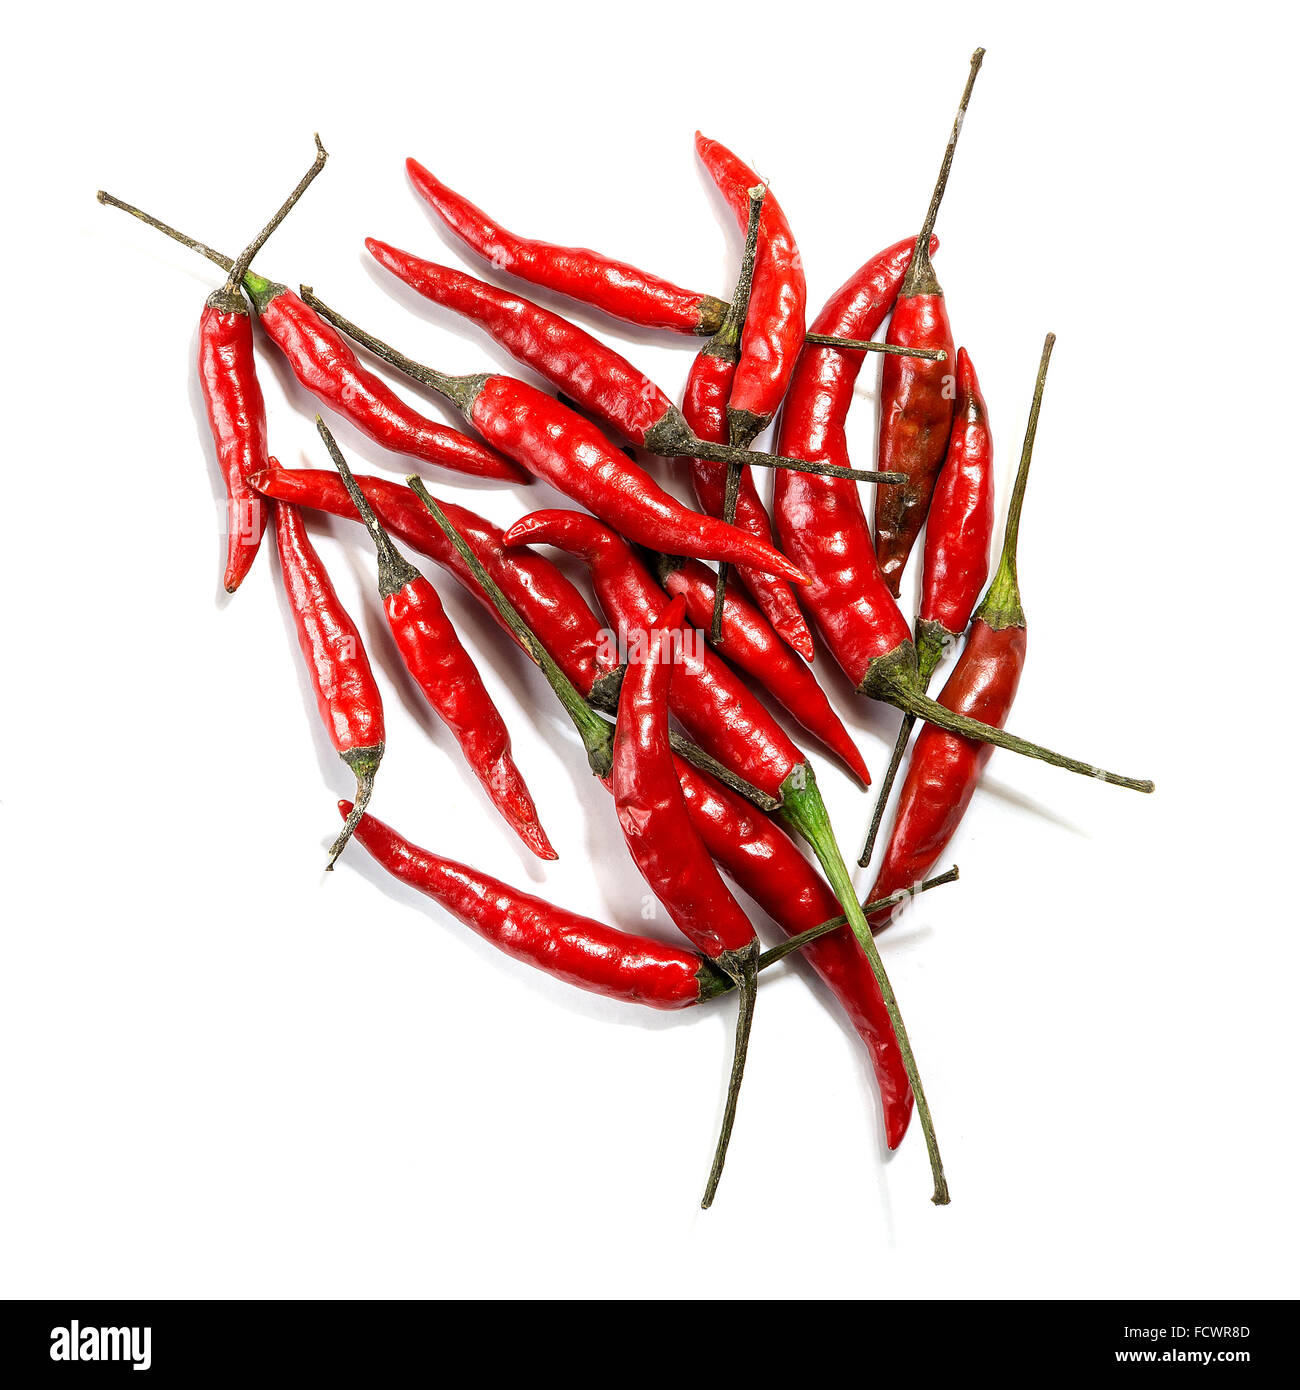 A group of red birds eye chillies on a white background - Stock Image